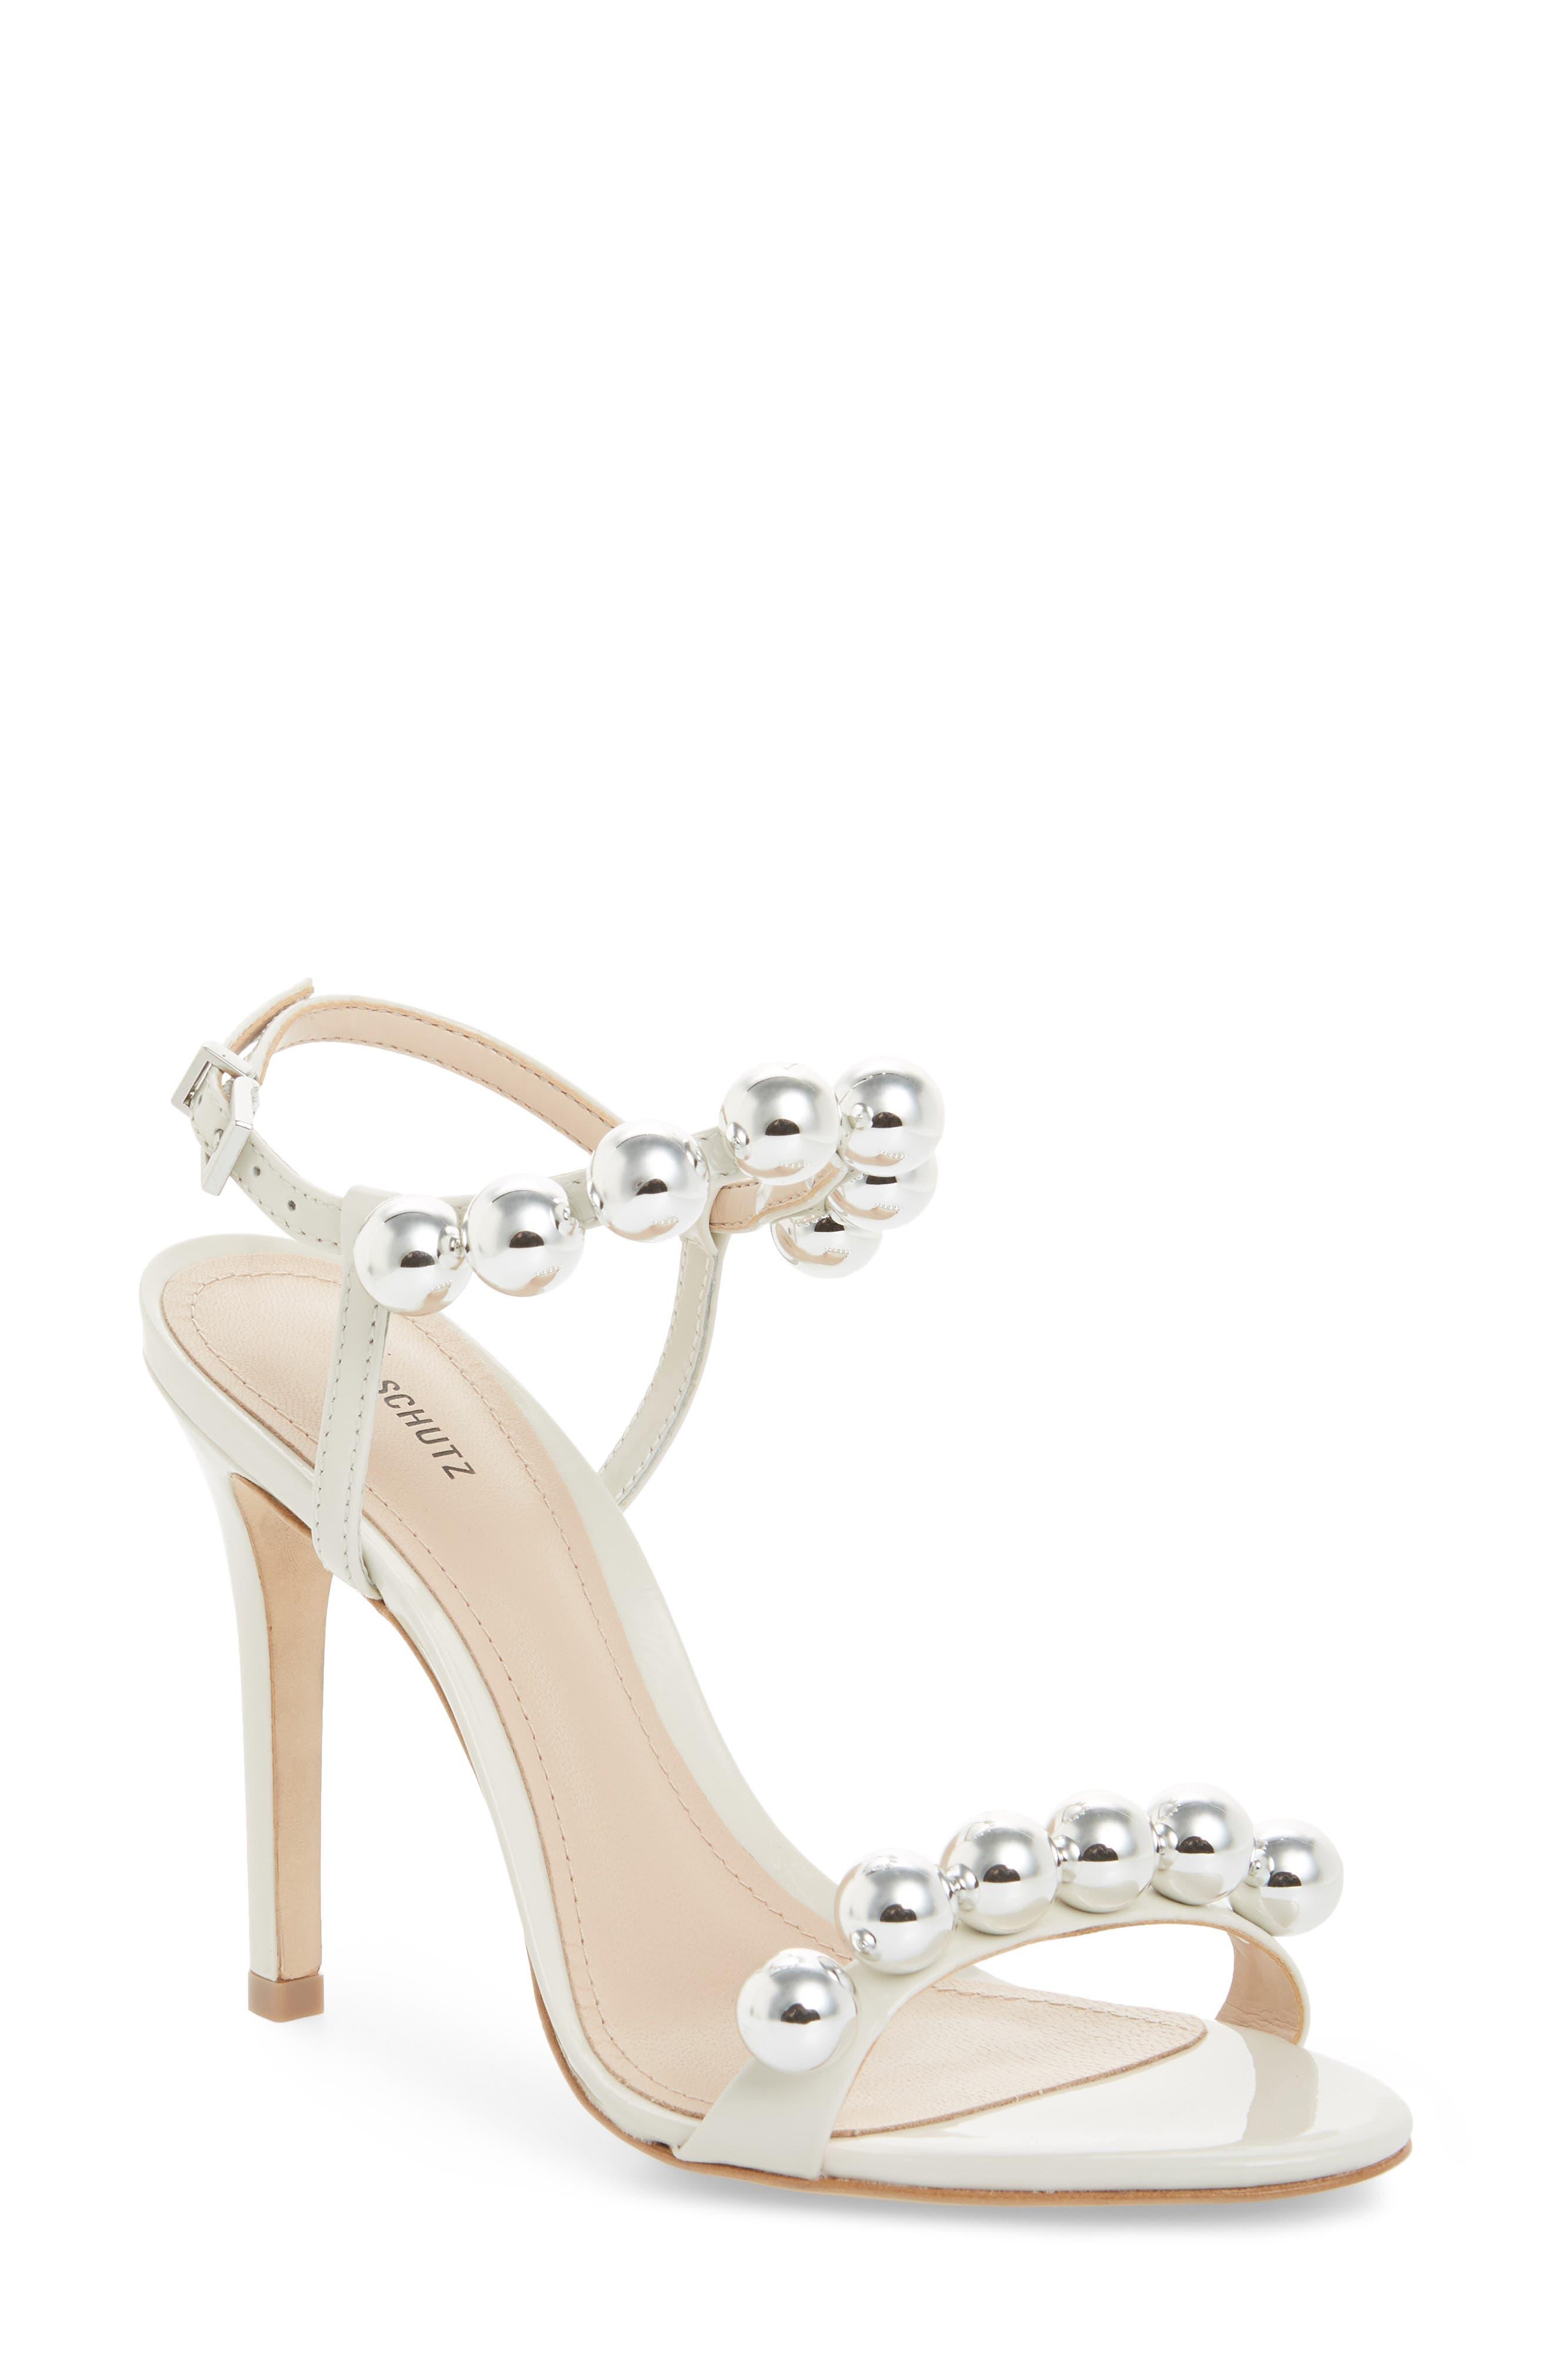 Nellie Sandal,                         Main,                         color, PEARL LEATHER